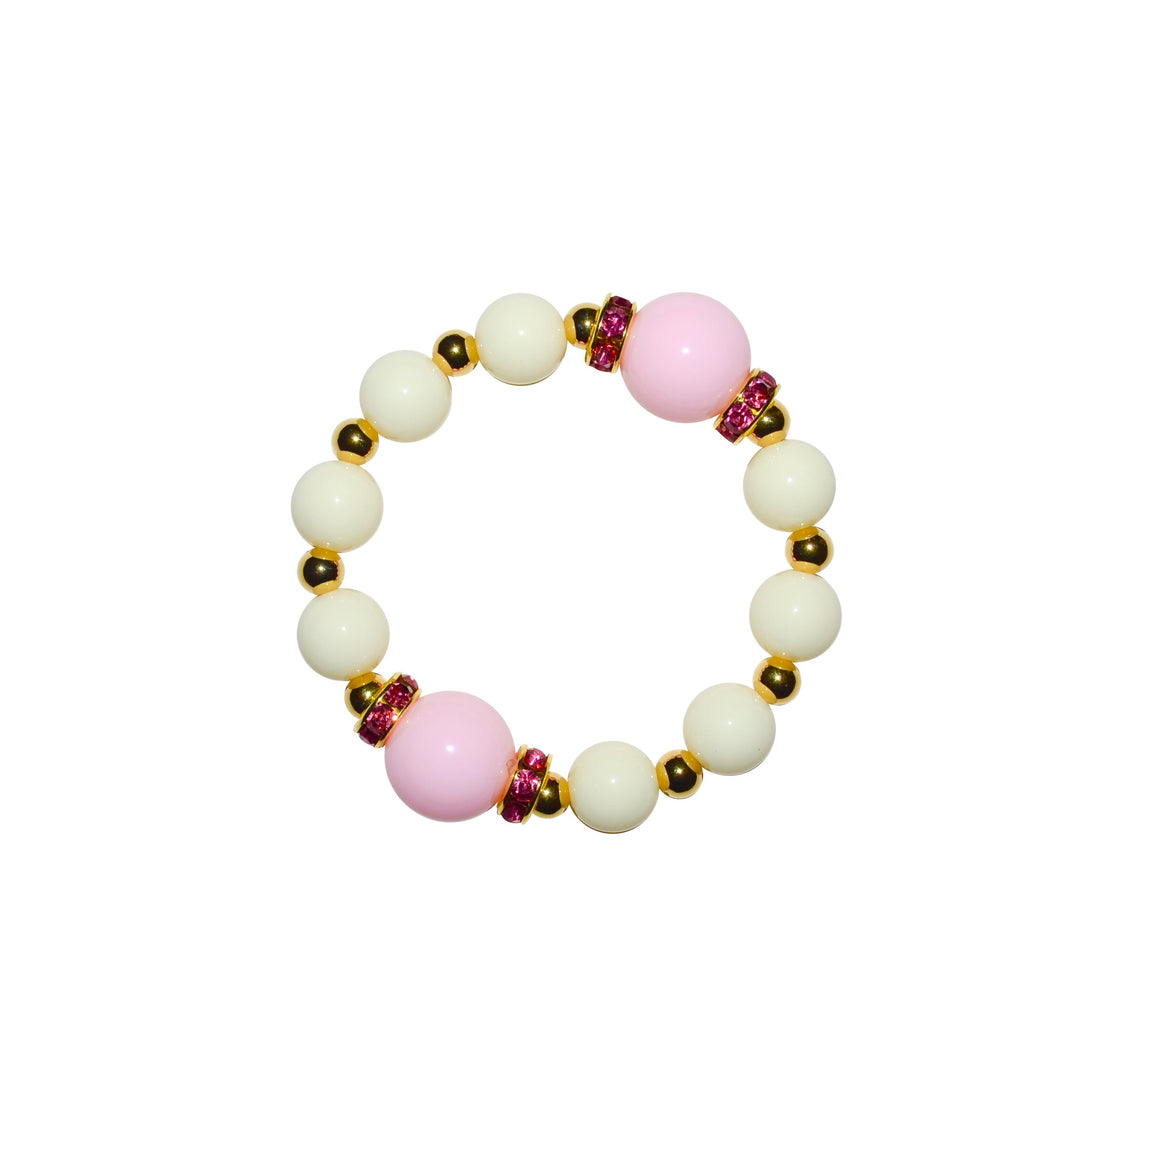 TATE HUDSON BRACELET IN IVORY AND PINK